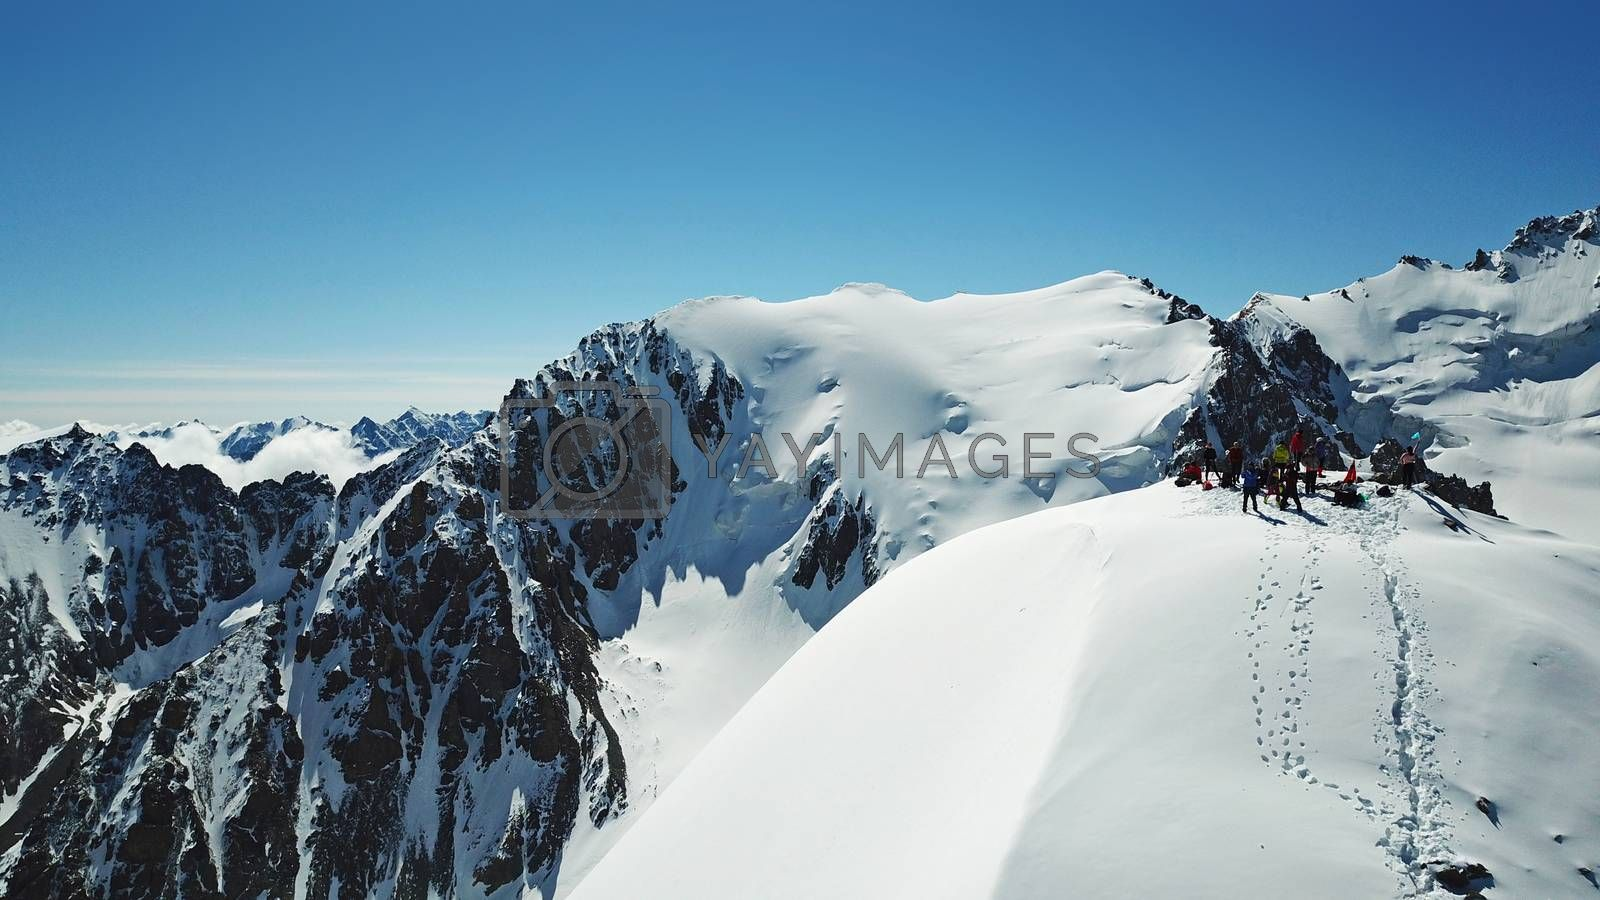 A group of climbers climb to the top of the peak. Dangerous, steep slope. Avalanche-prone area. Mountains covered with snow. Steep cliffs and large rocks. Above the mountains, top view from a drone.